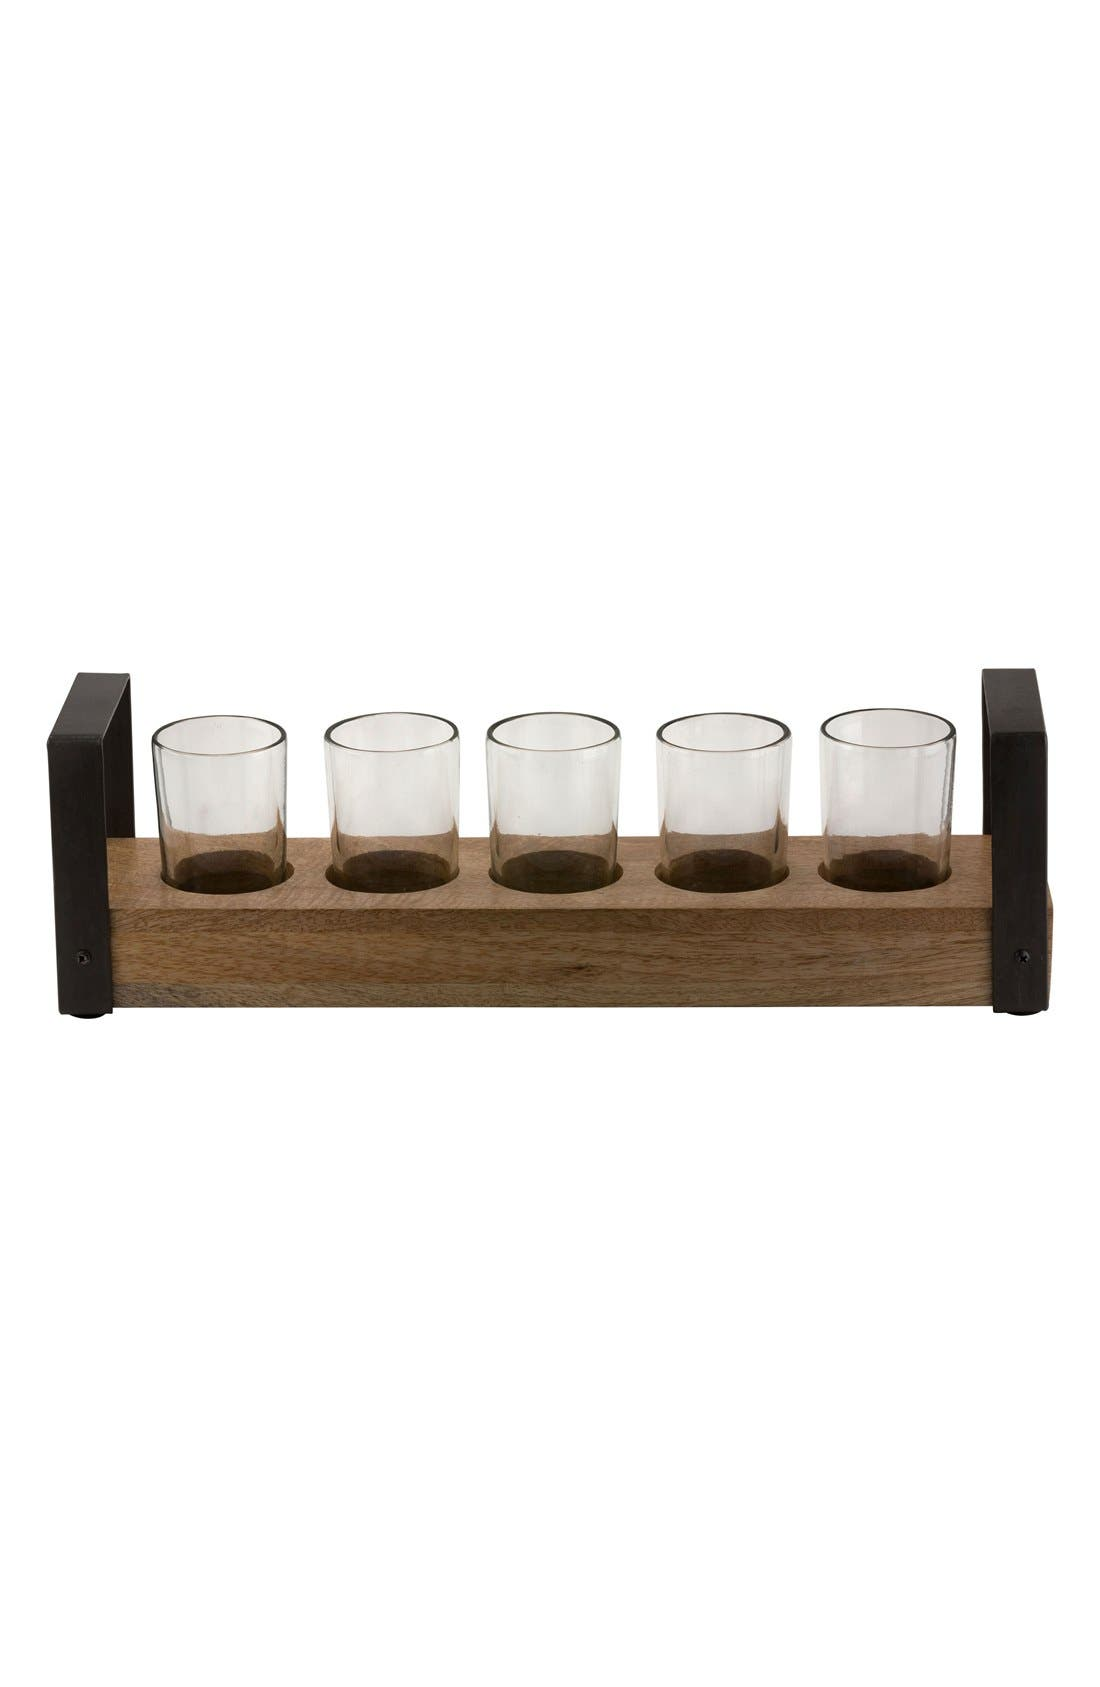 Wooden Condiment Tray & Shot Glasses,                             Main thumbnail 1, color,                             Brown